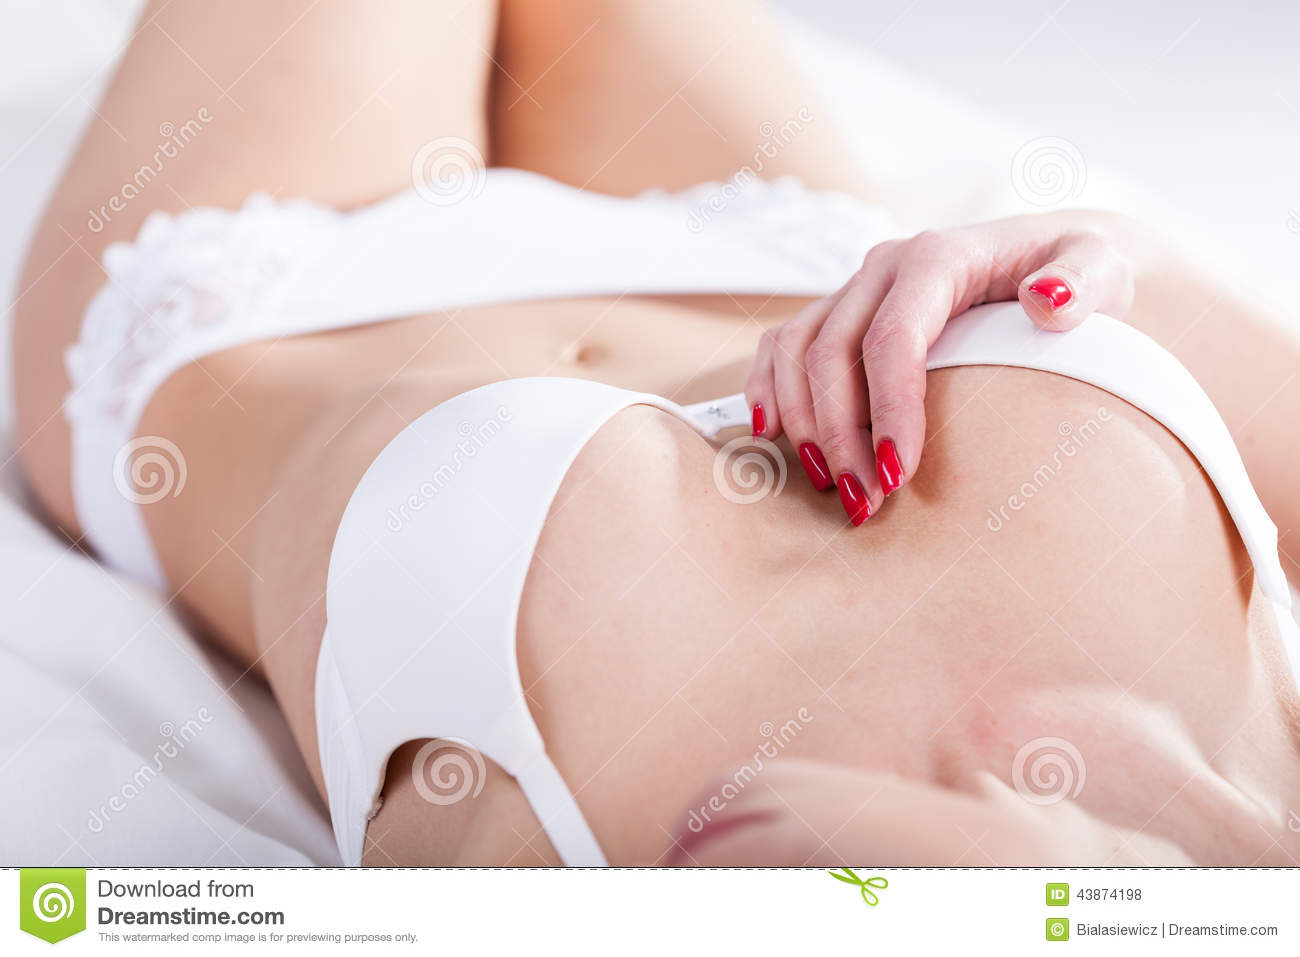 f5bcb53aa29 Woman In White Underwear Tempting Stock Photo - Image of bedclothes ...